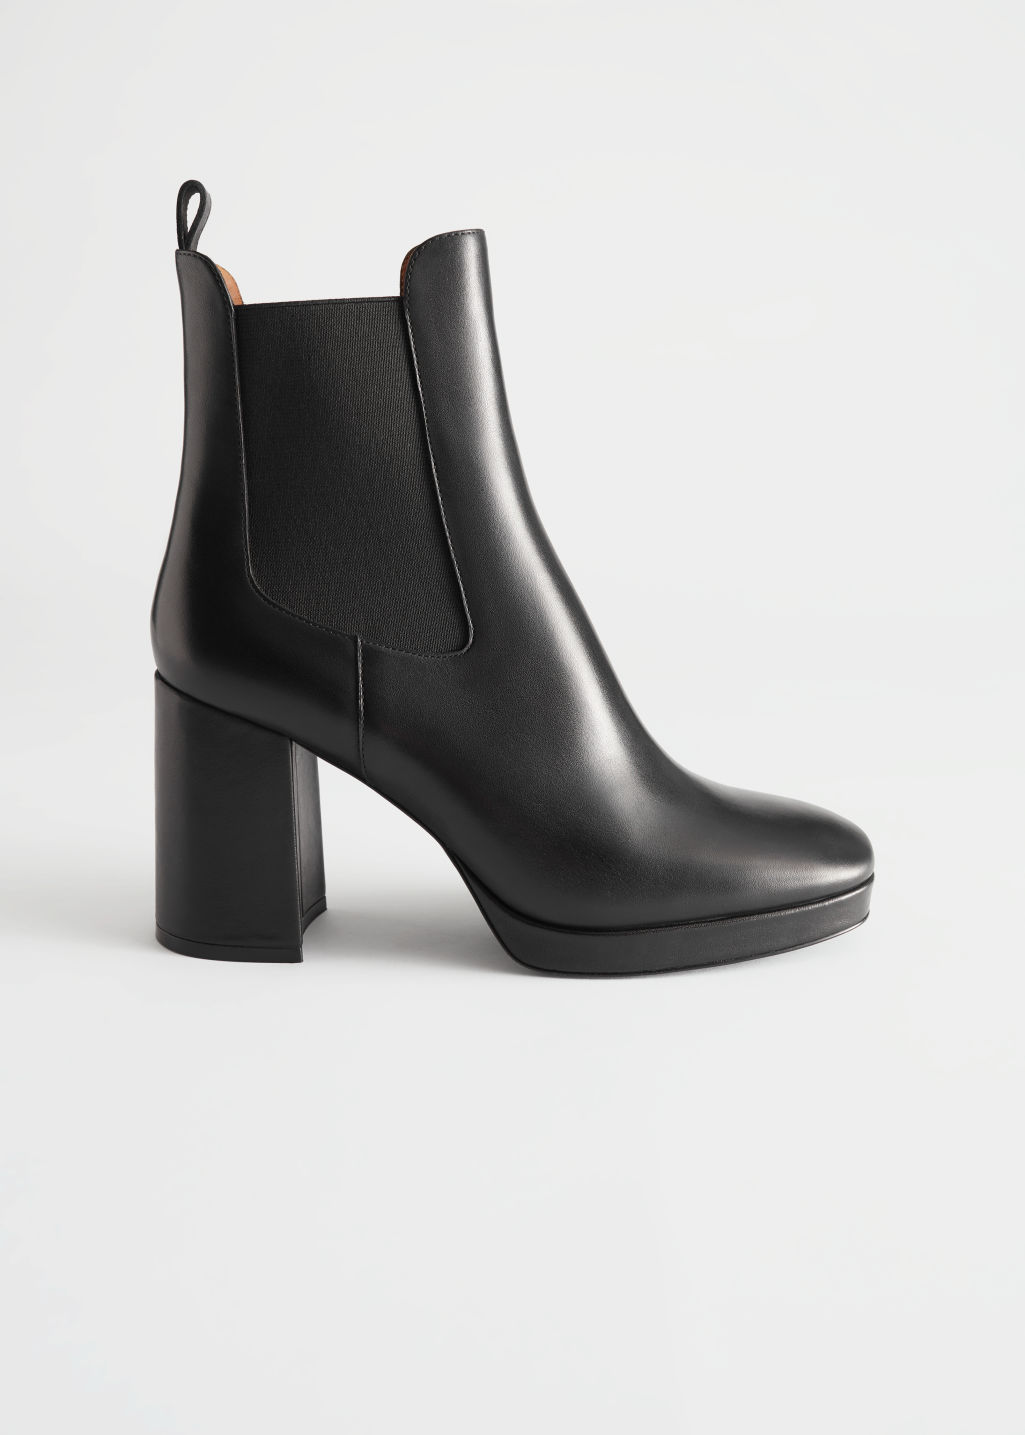 StillLife Side Image of Stories Block Heel Leather Chelsea Boots in Black